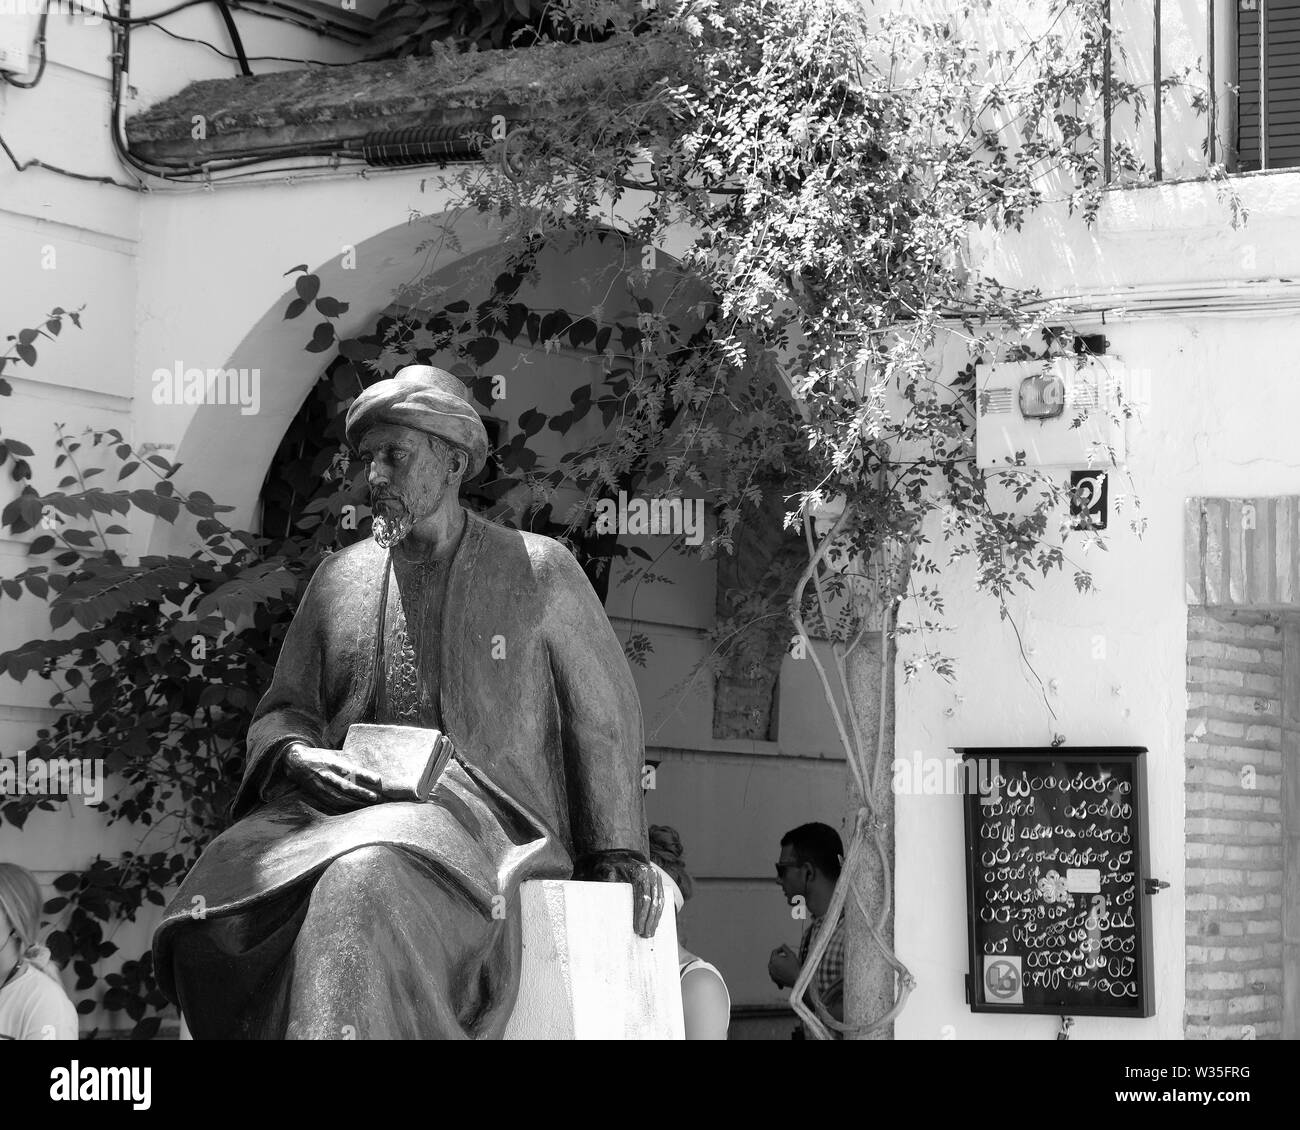 Detail of statue in honor of Moses ben Maimon, or Maimonides, a medieval Sephardic Jewish scholar, in Córdoba, Spain. Stock Photo